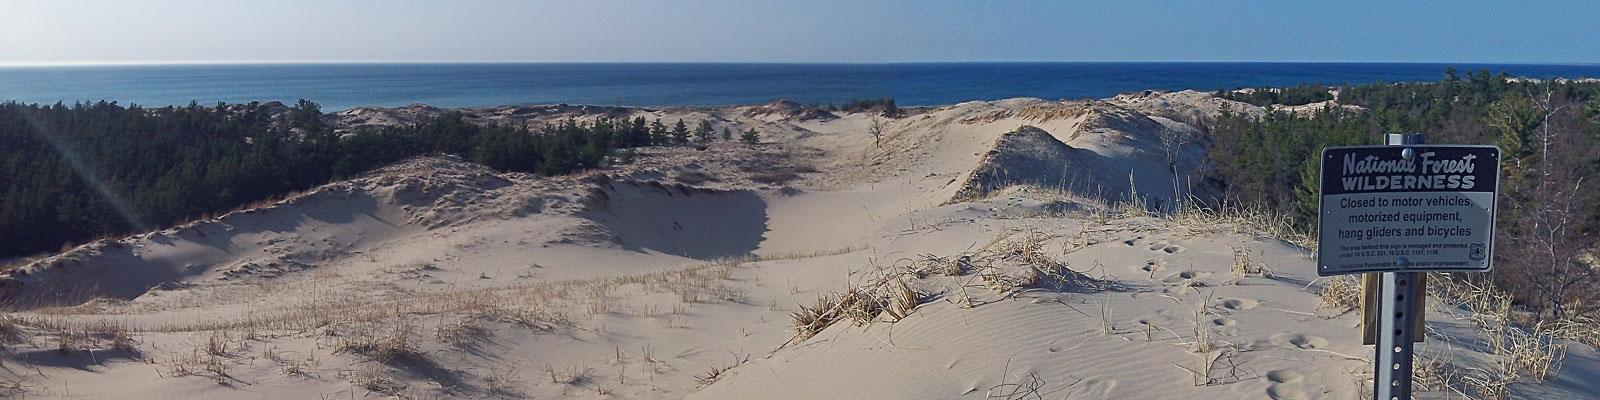 24-border-sign-nordhouse-dunes-ludington-state-park